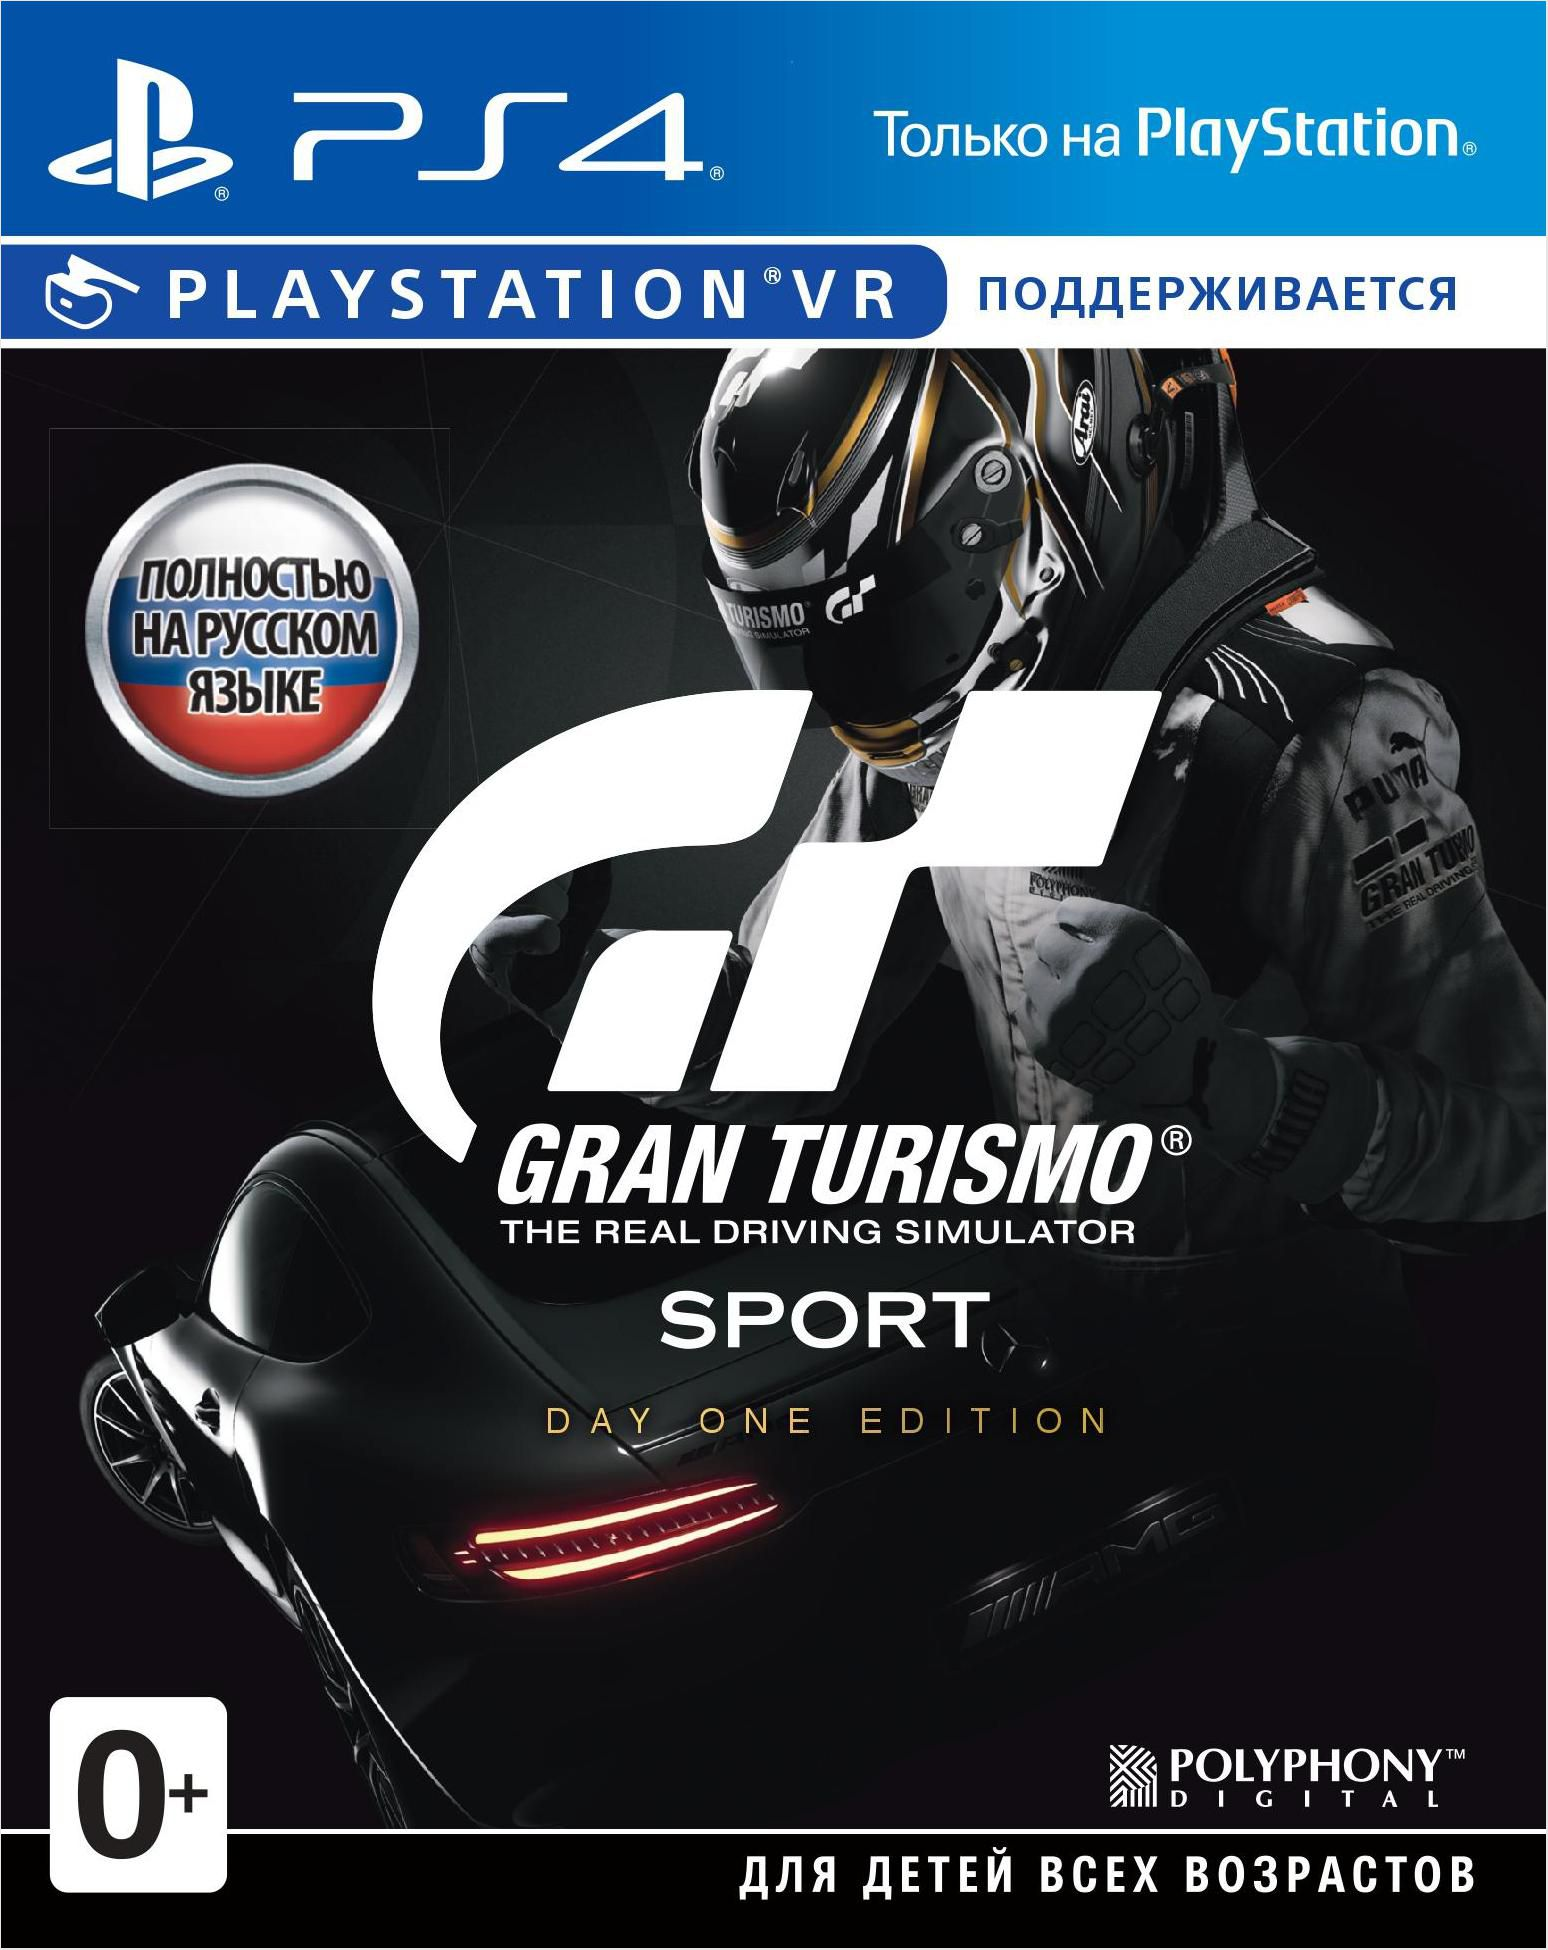 Gran Turismo Sport. Day One Edition (поддержка VR) [PS4] игровая консоль sony playstation 4 slim с 1 тб памяти игрой gran turismo sport day one edition cuh 2008b limited edition черный белый page 8